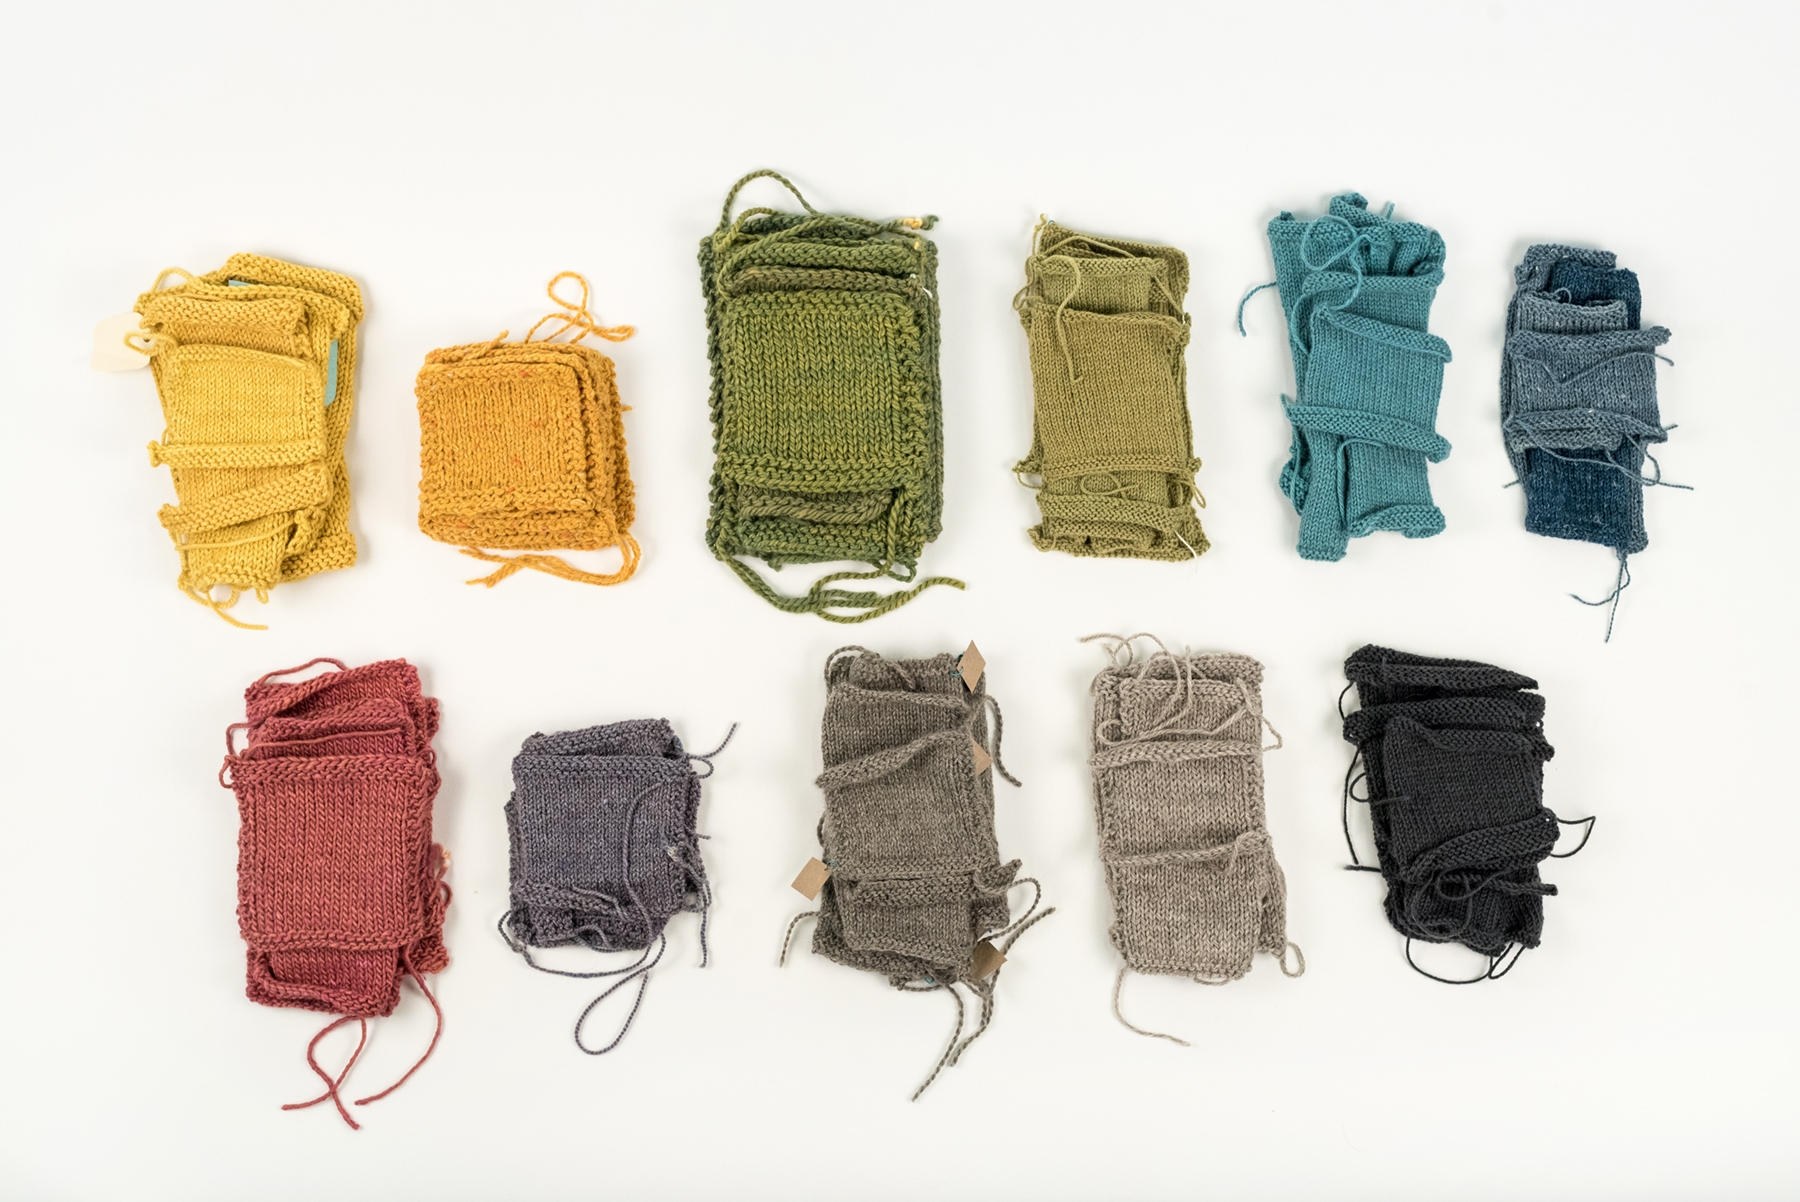 Top row, l to r: Canopy Worsted, Arranmore, Tundra, Canopy Fingering, Road to China Light, Meadow. Bottom row, l to r:Terra, Acadia, Knightsbridge, Cumbria, Cumbria Fingering.